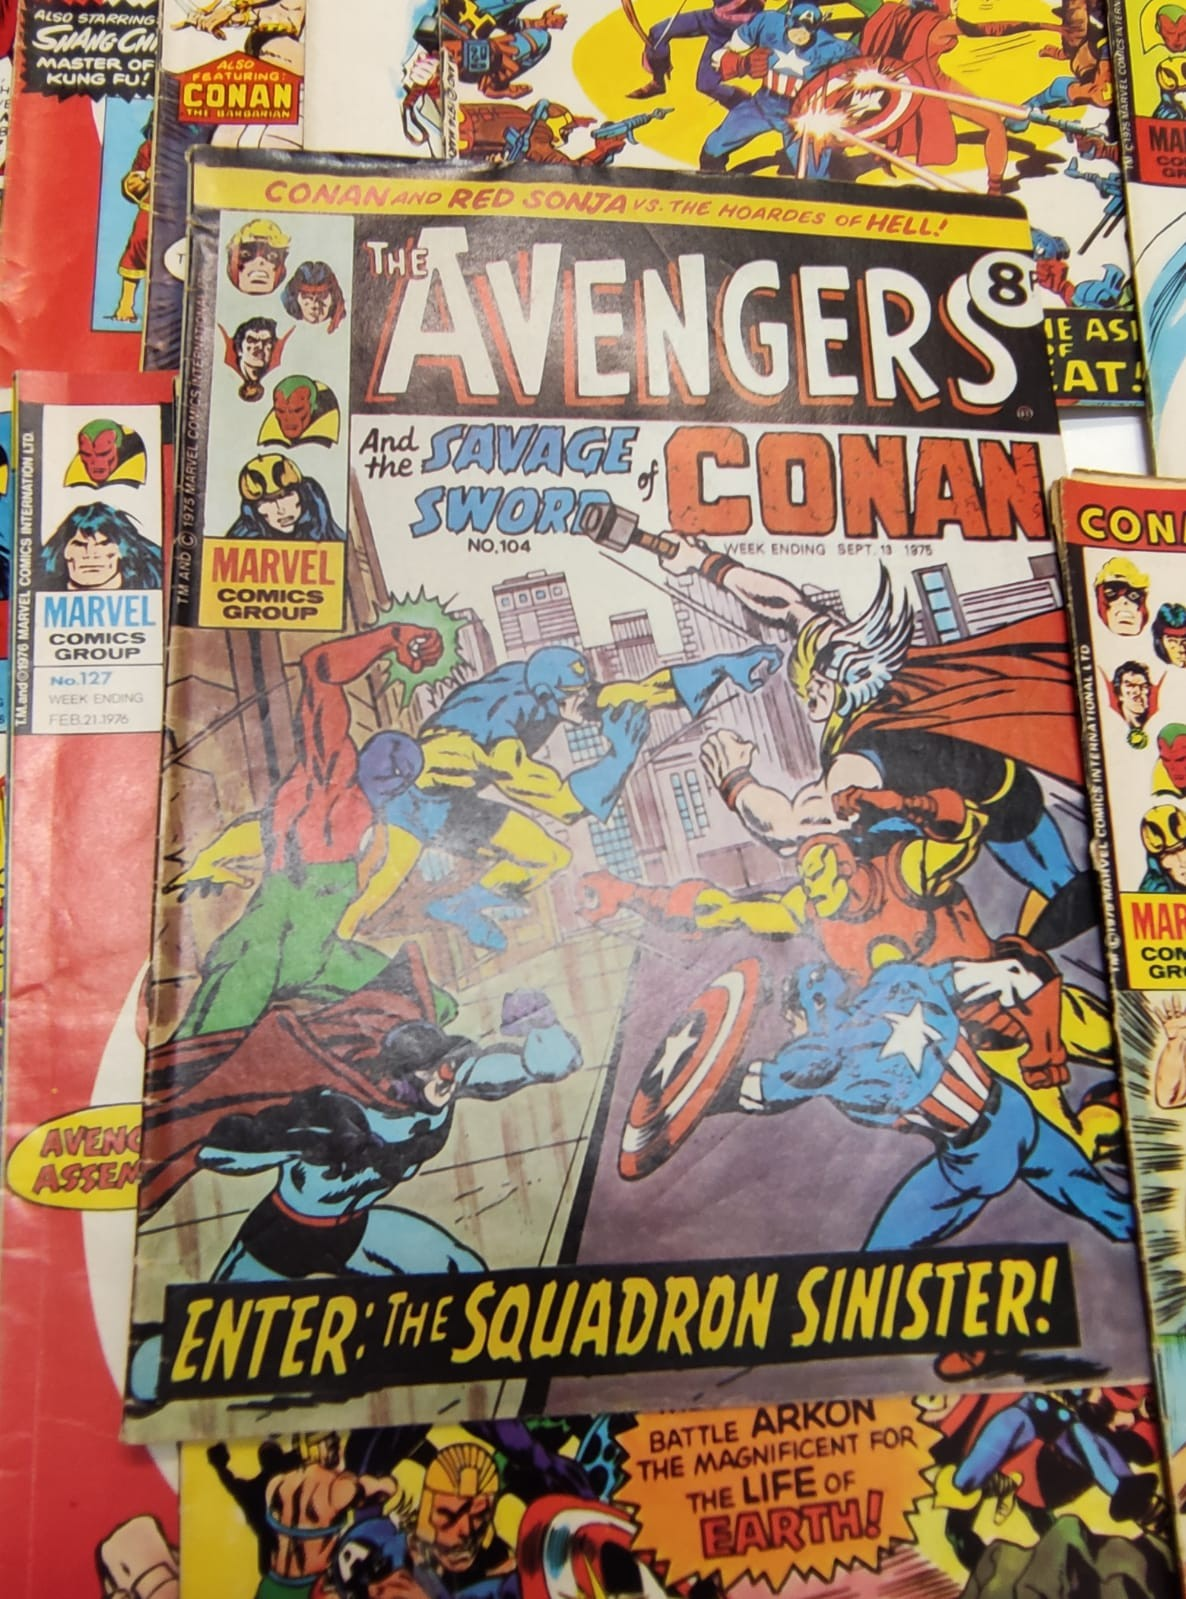 25 x Marvel comics. The Avengers. Dating from 1974-1976 - Image 17 of 18